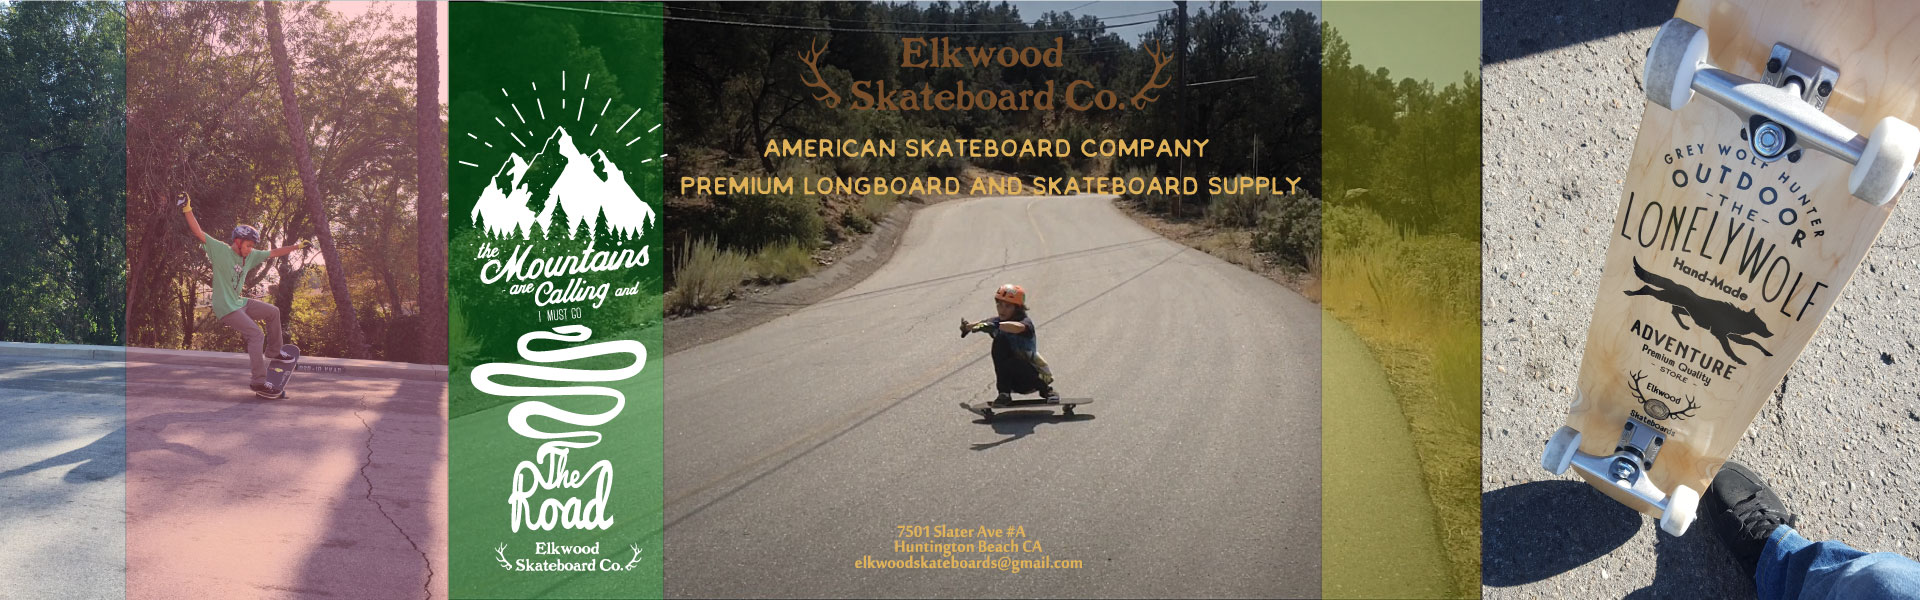 elkwoodskateboards